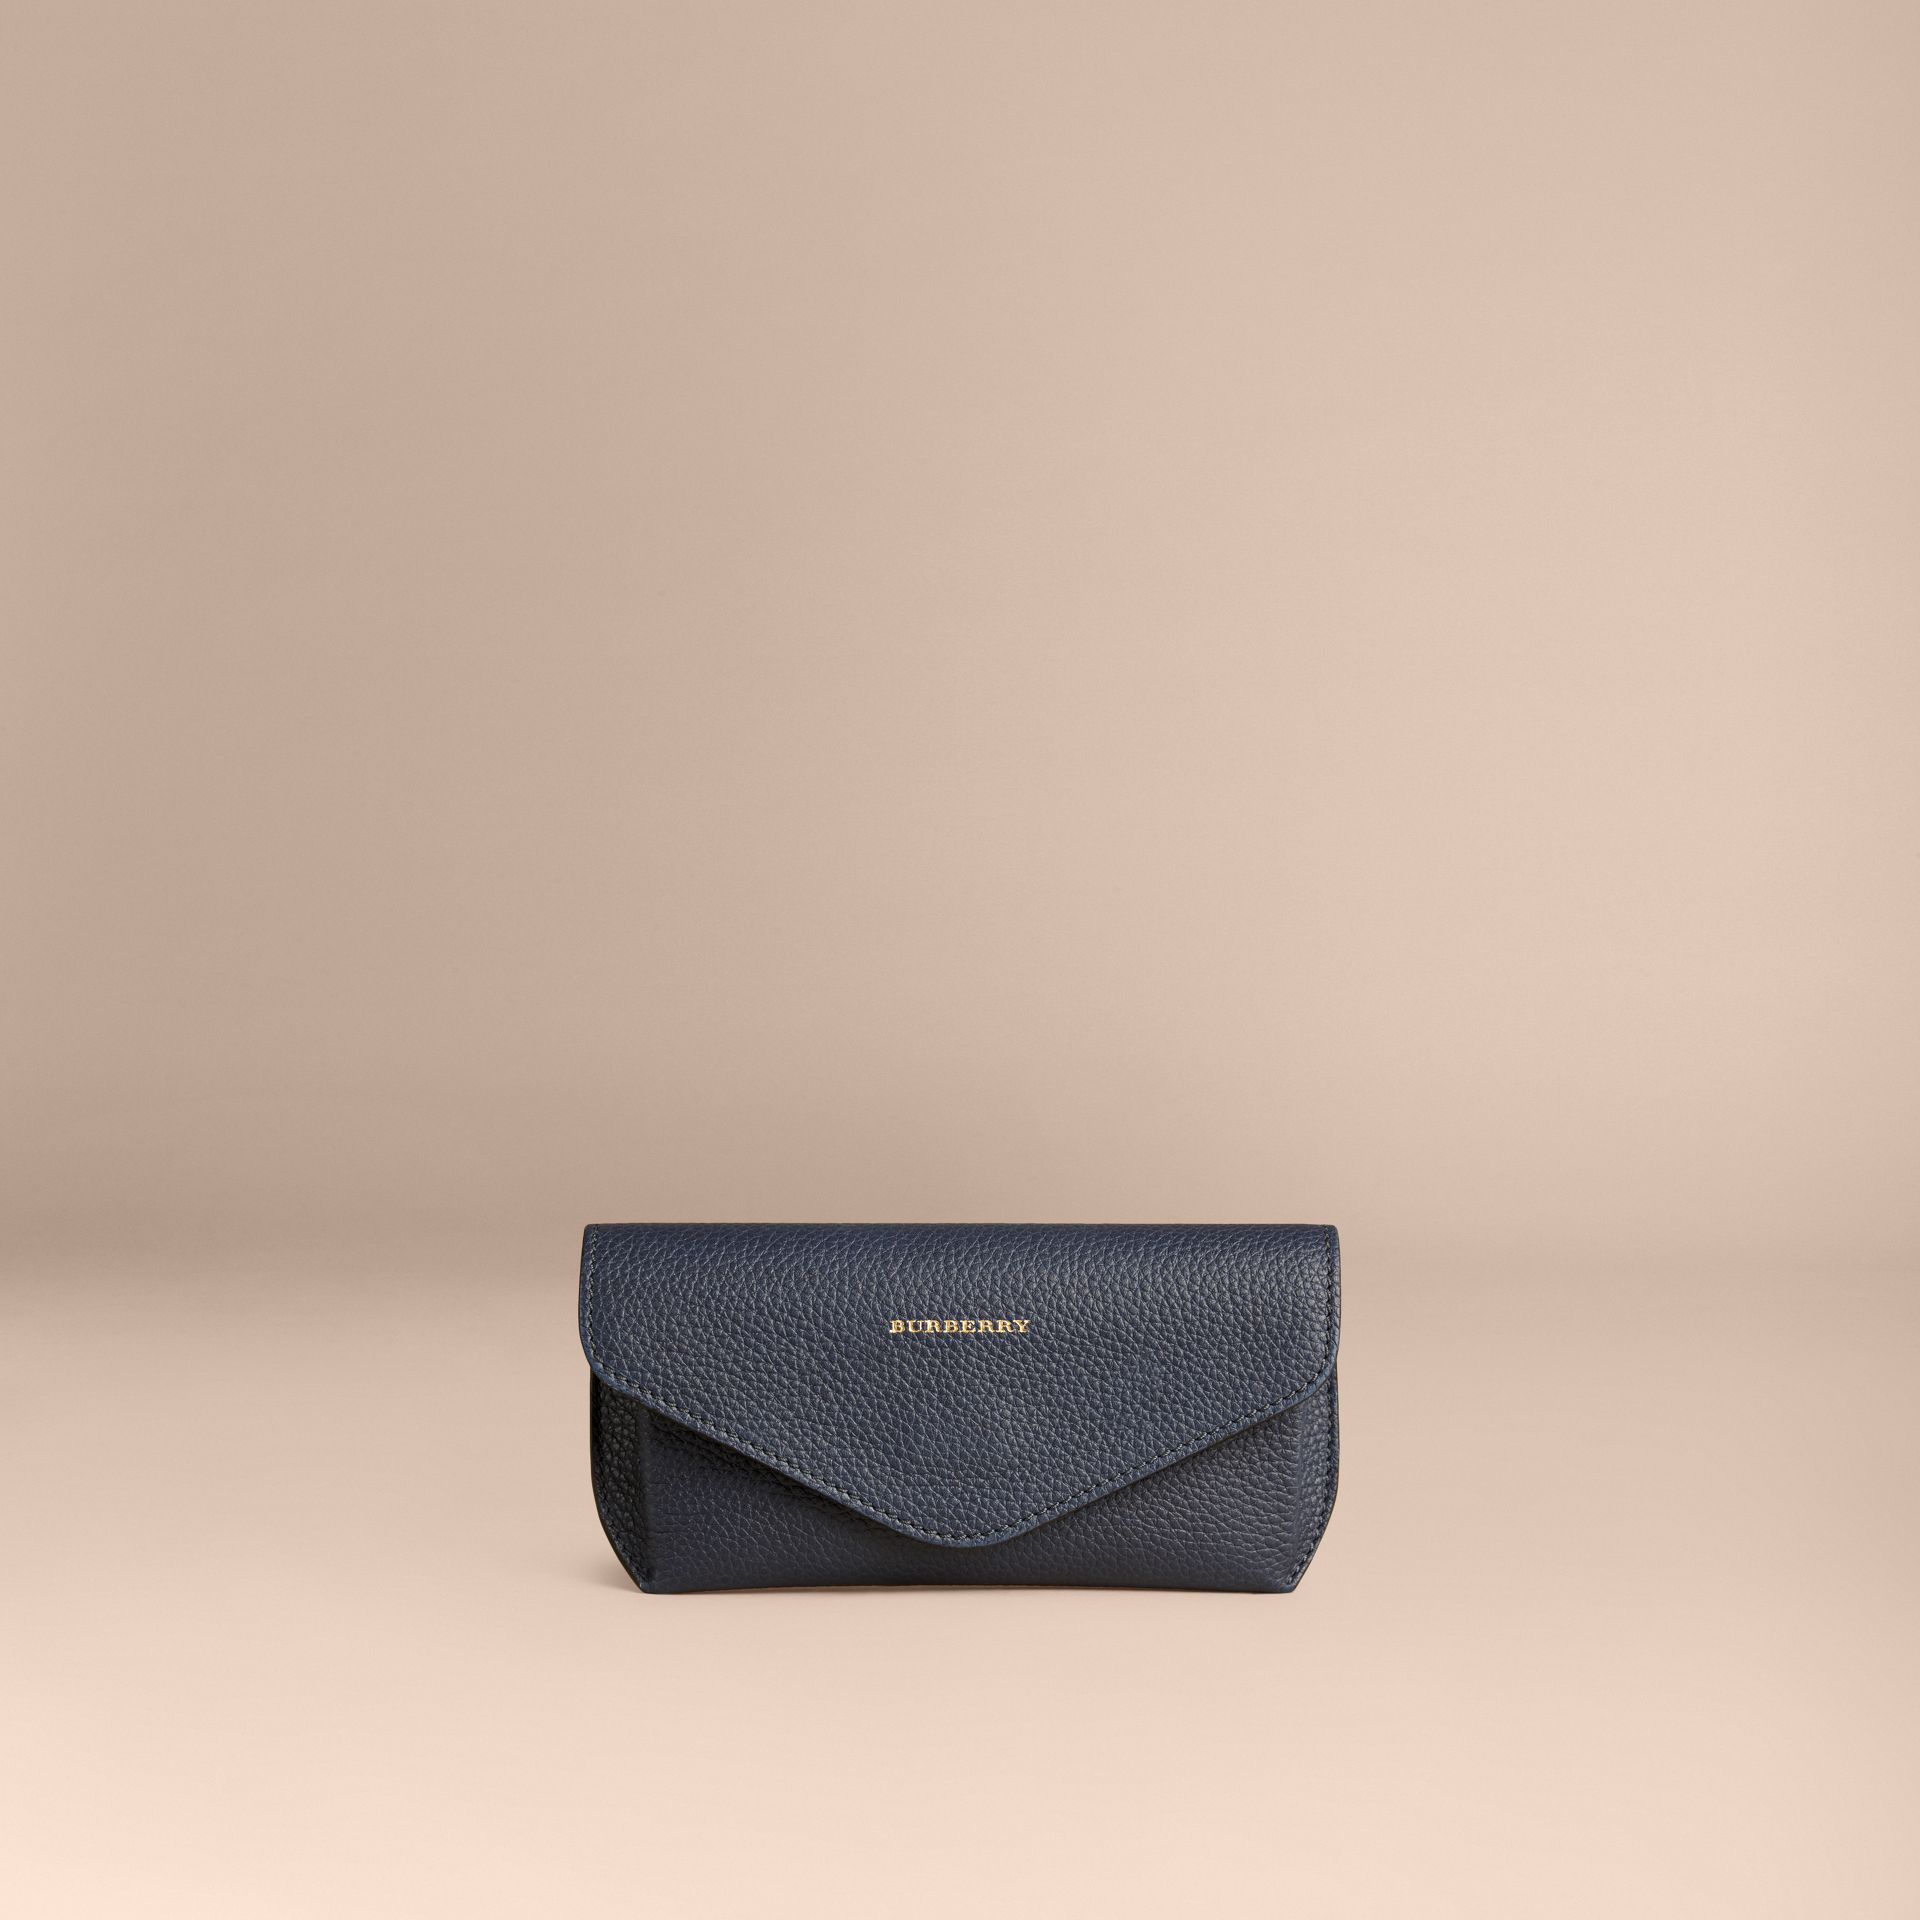 Bright navy Grainy Leather Eyewear Case Bright Navy - gallery image 3